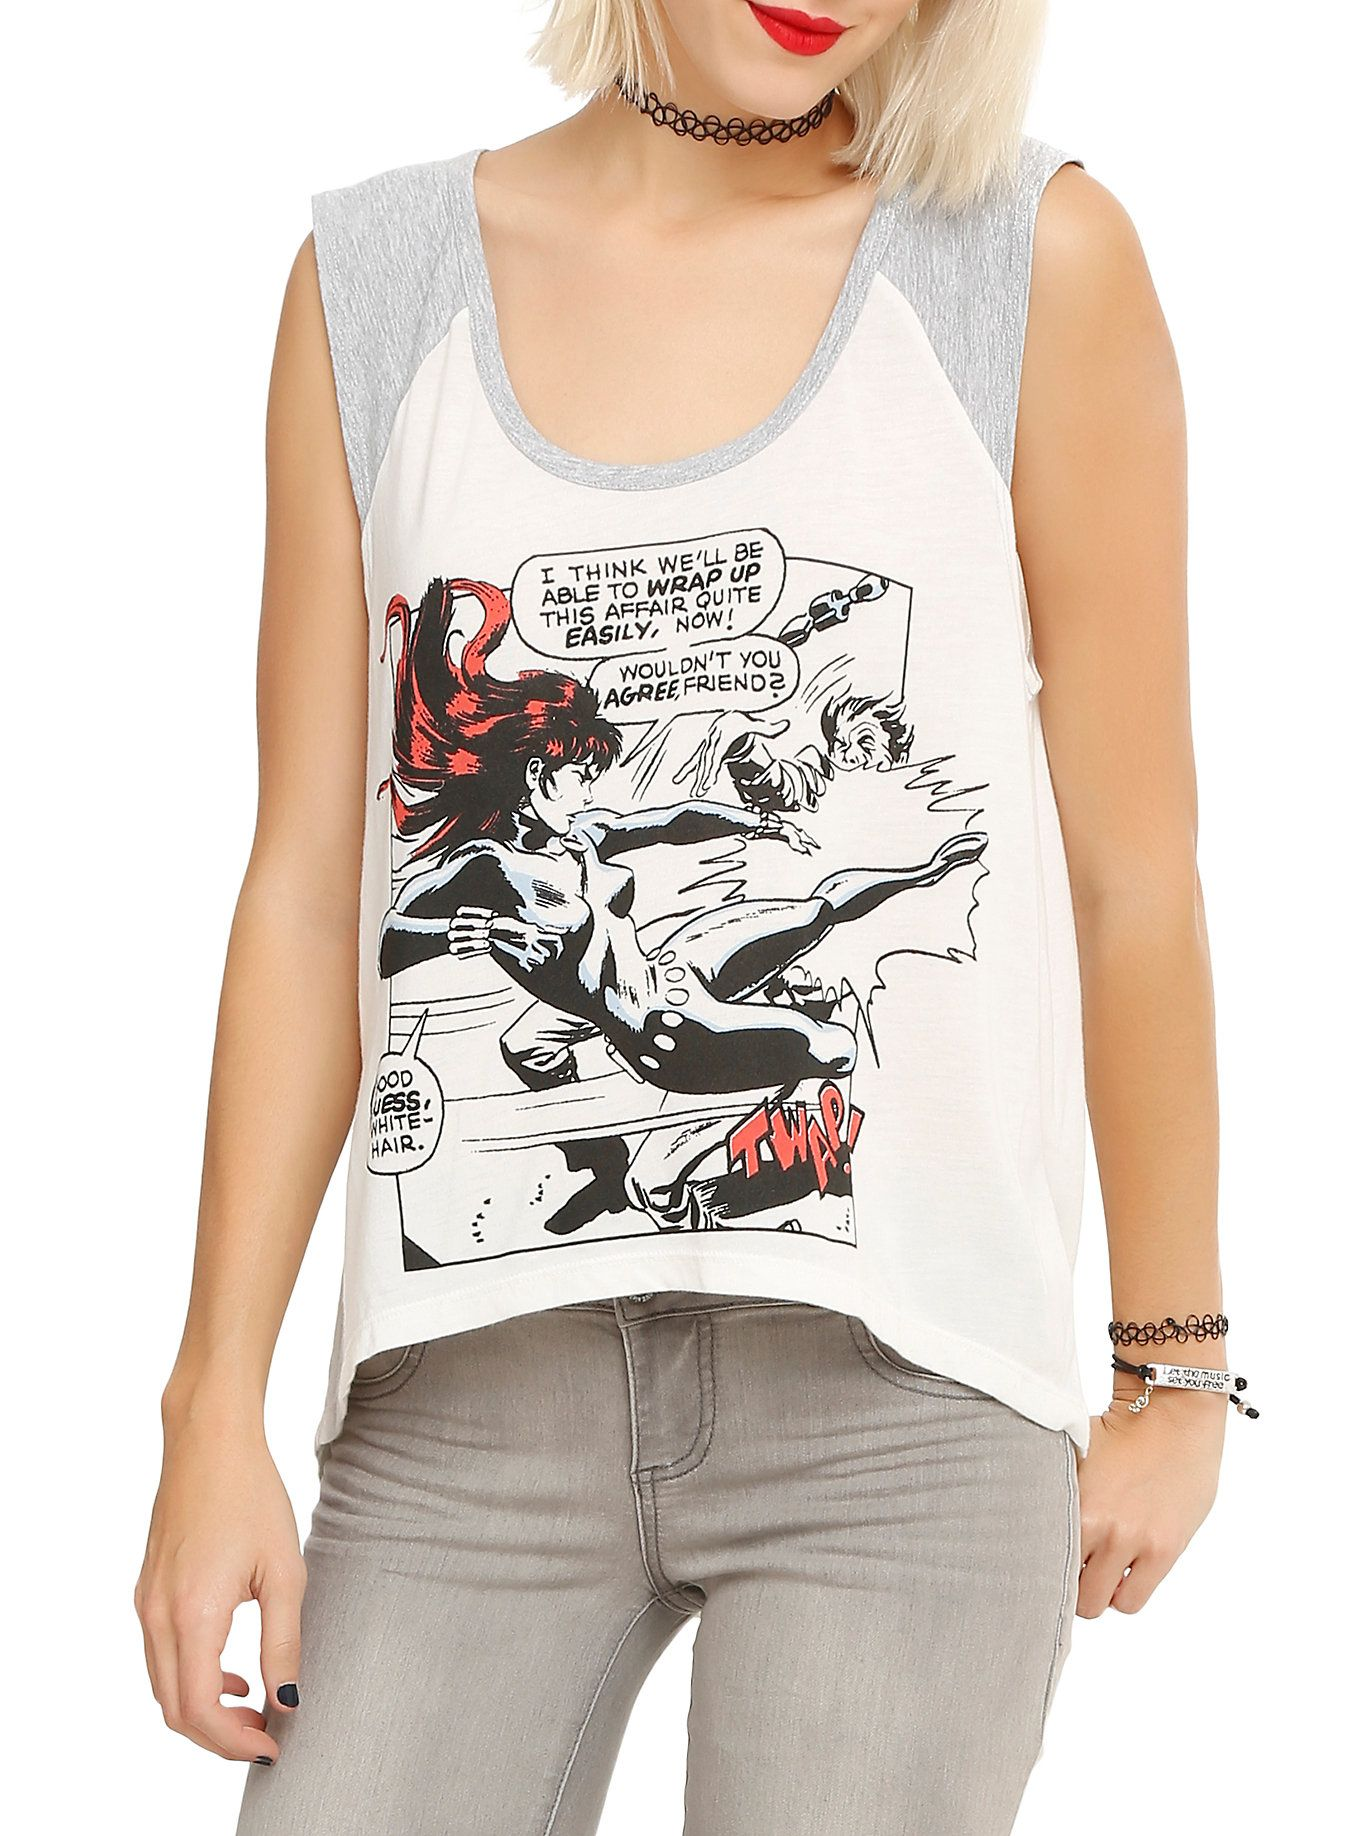 Black widow t shirt hot topic - Http Www Hottopic Com Product Marvel Black